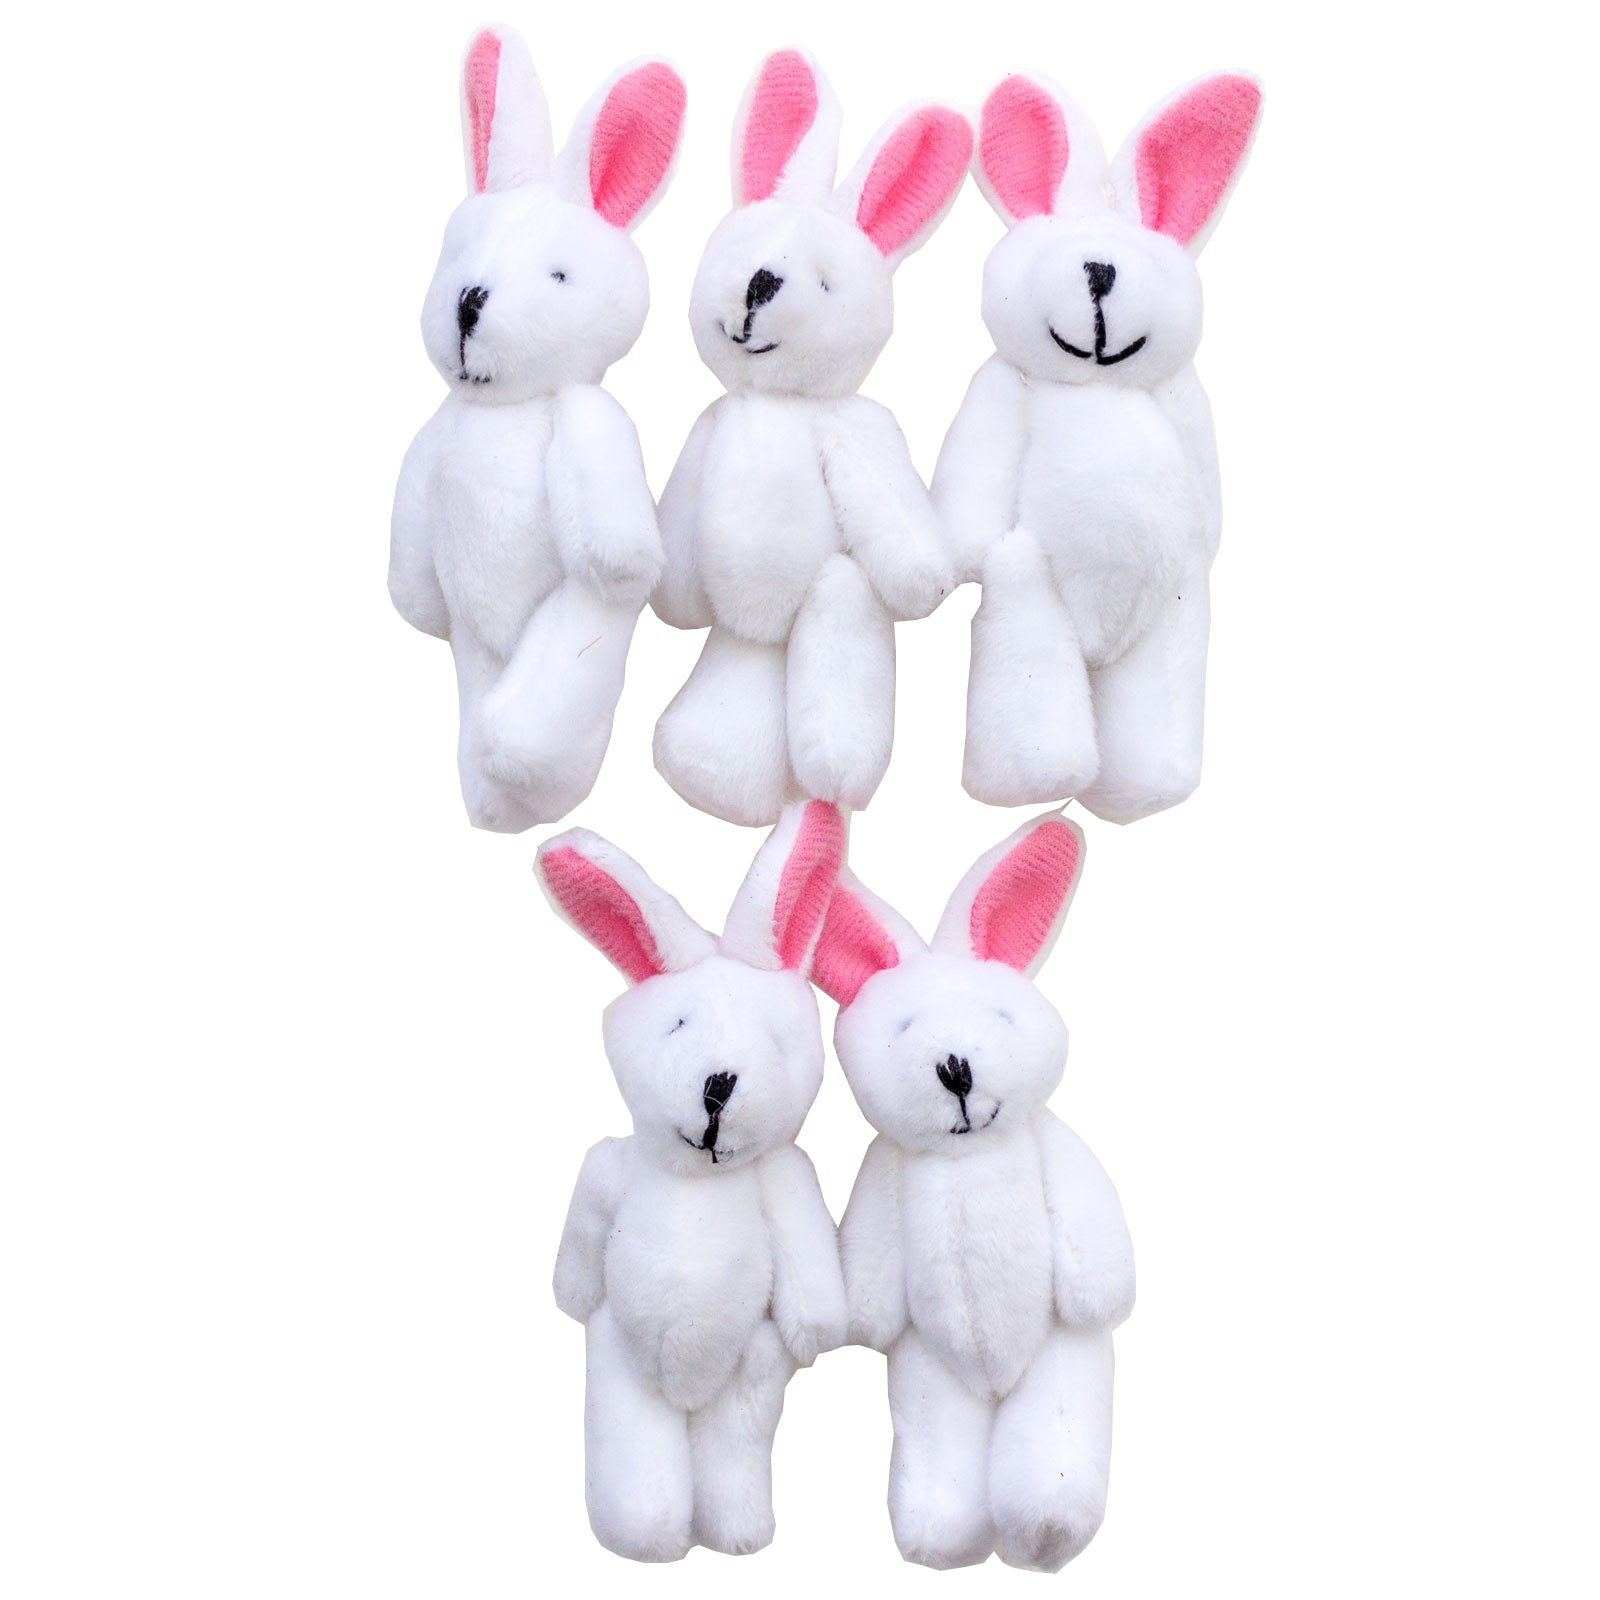 Small Rabbits X 25 - Cute Soft Adorable